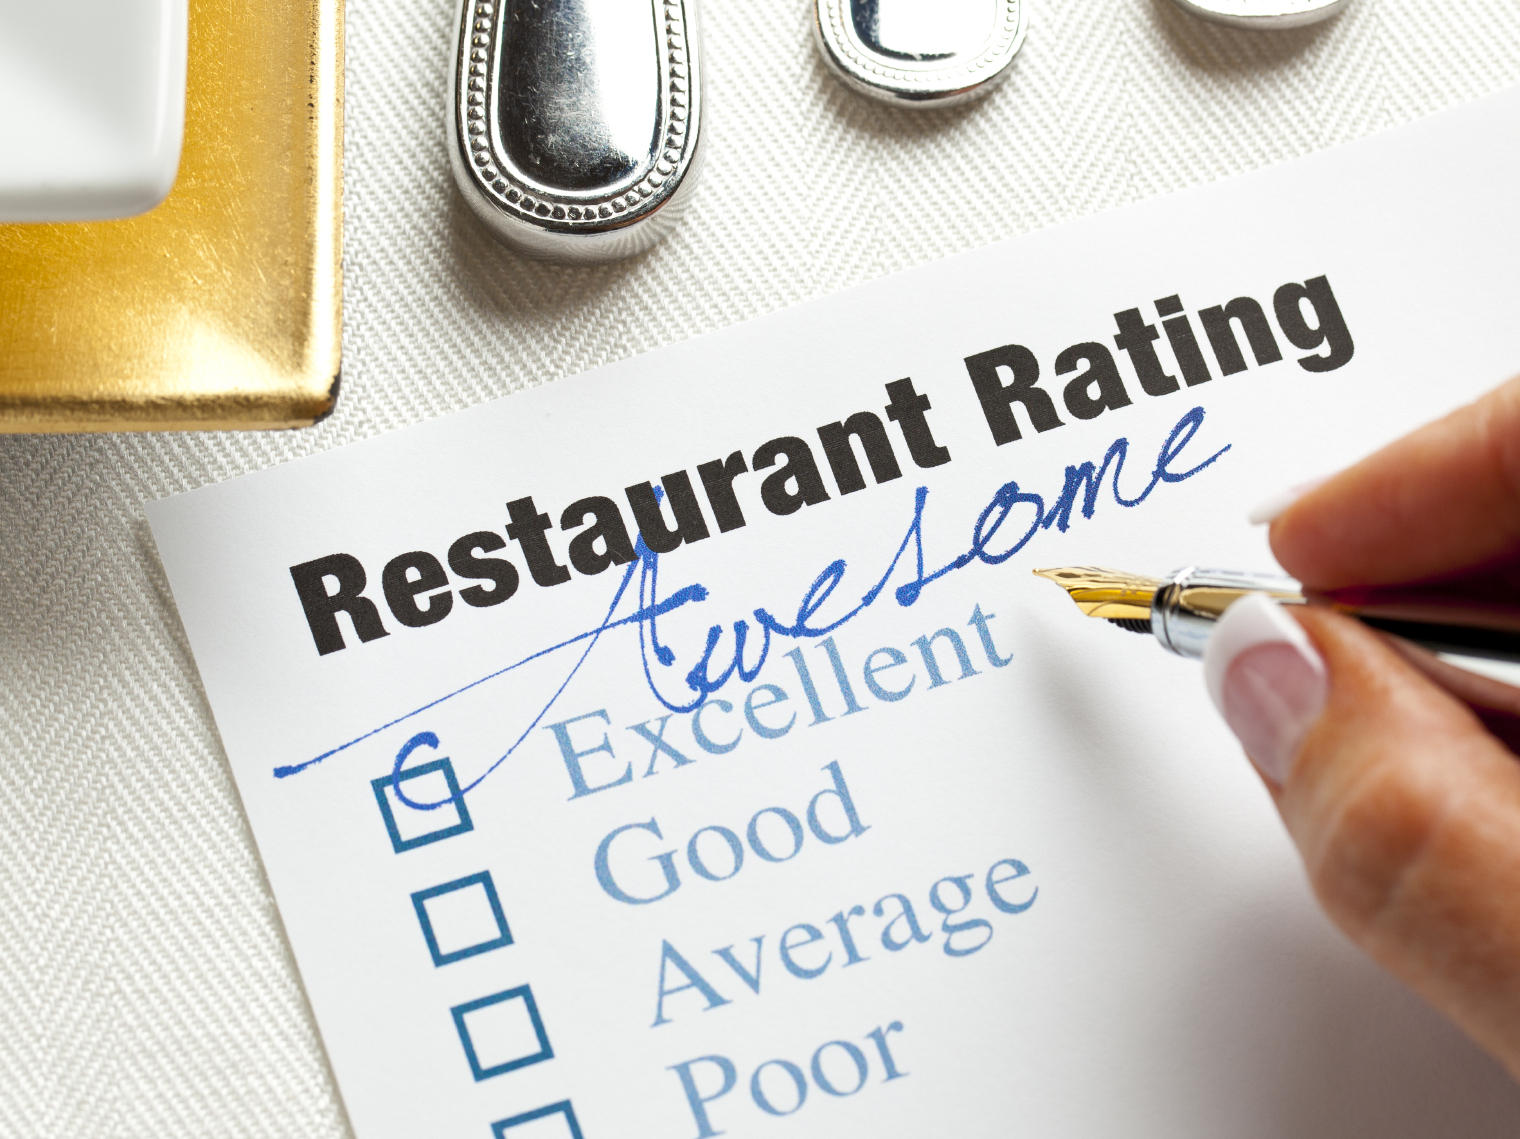 restaurant review writing